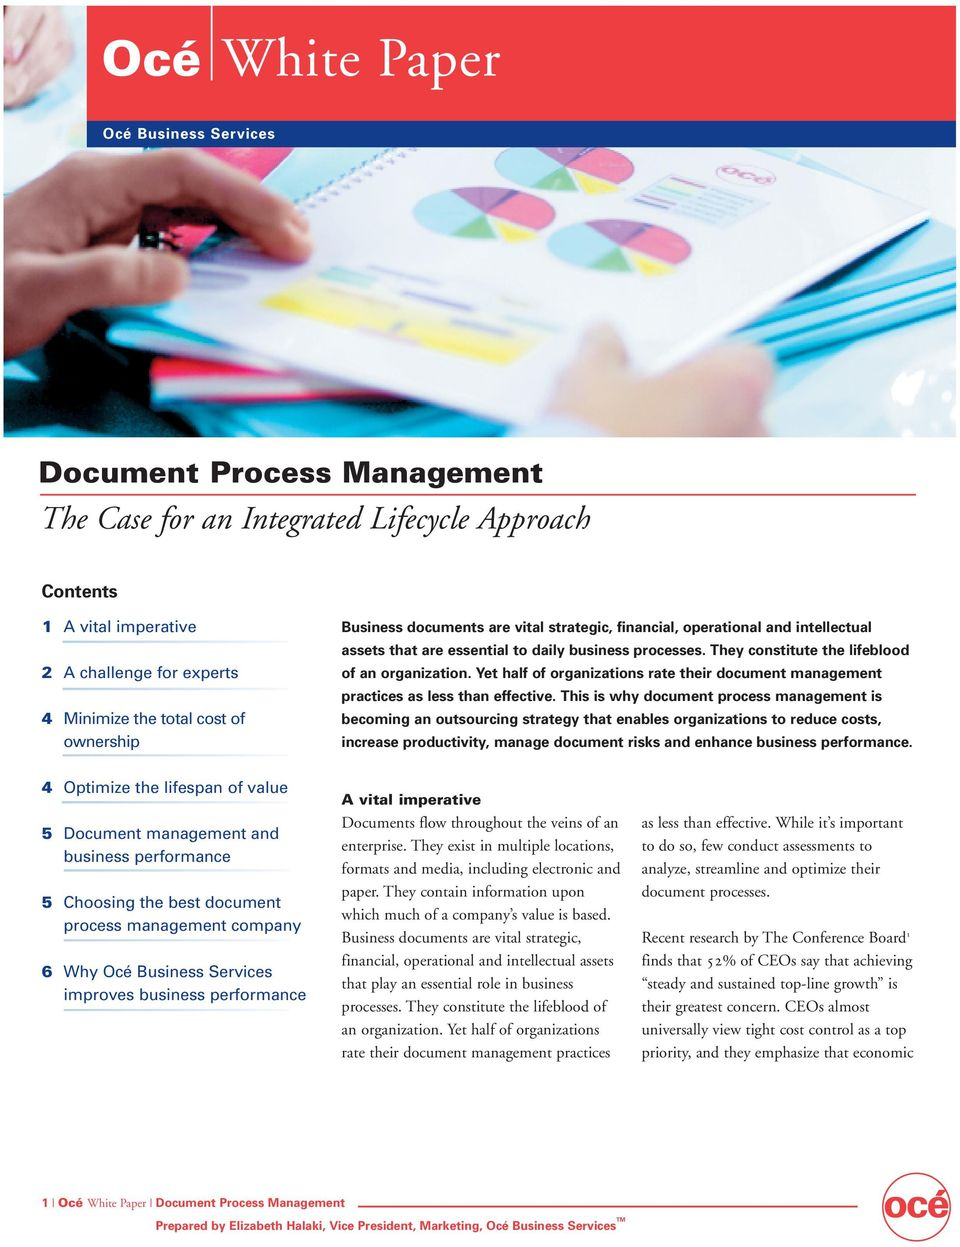 Yet half of organizations rate their document management practices as less than effective.